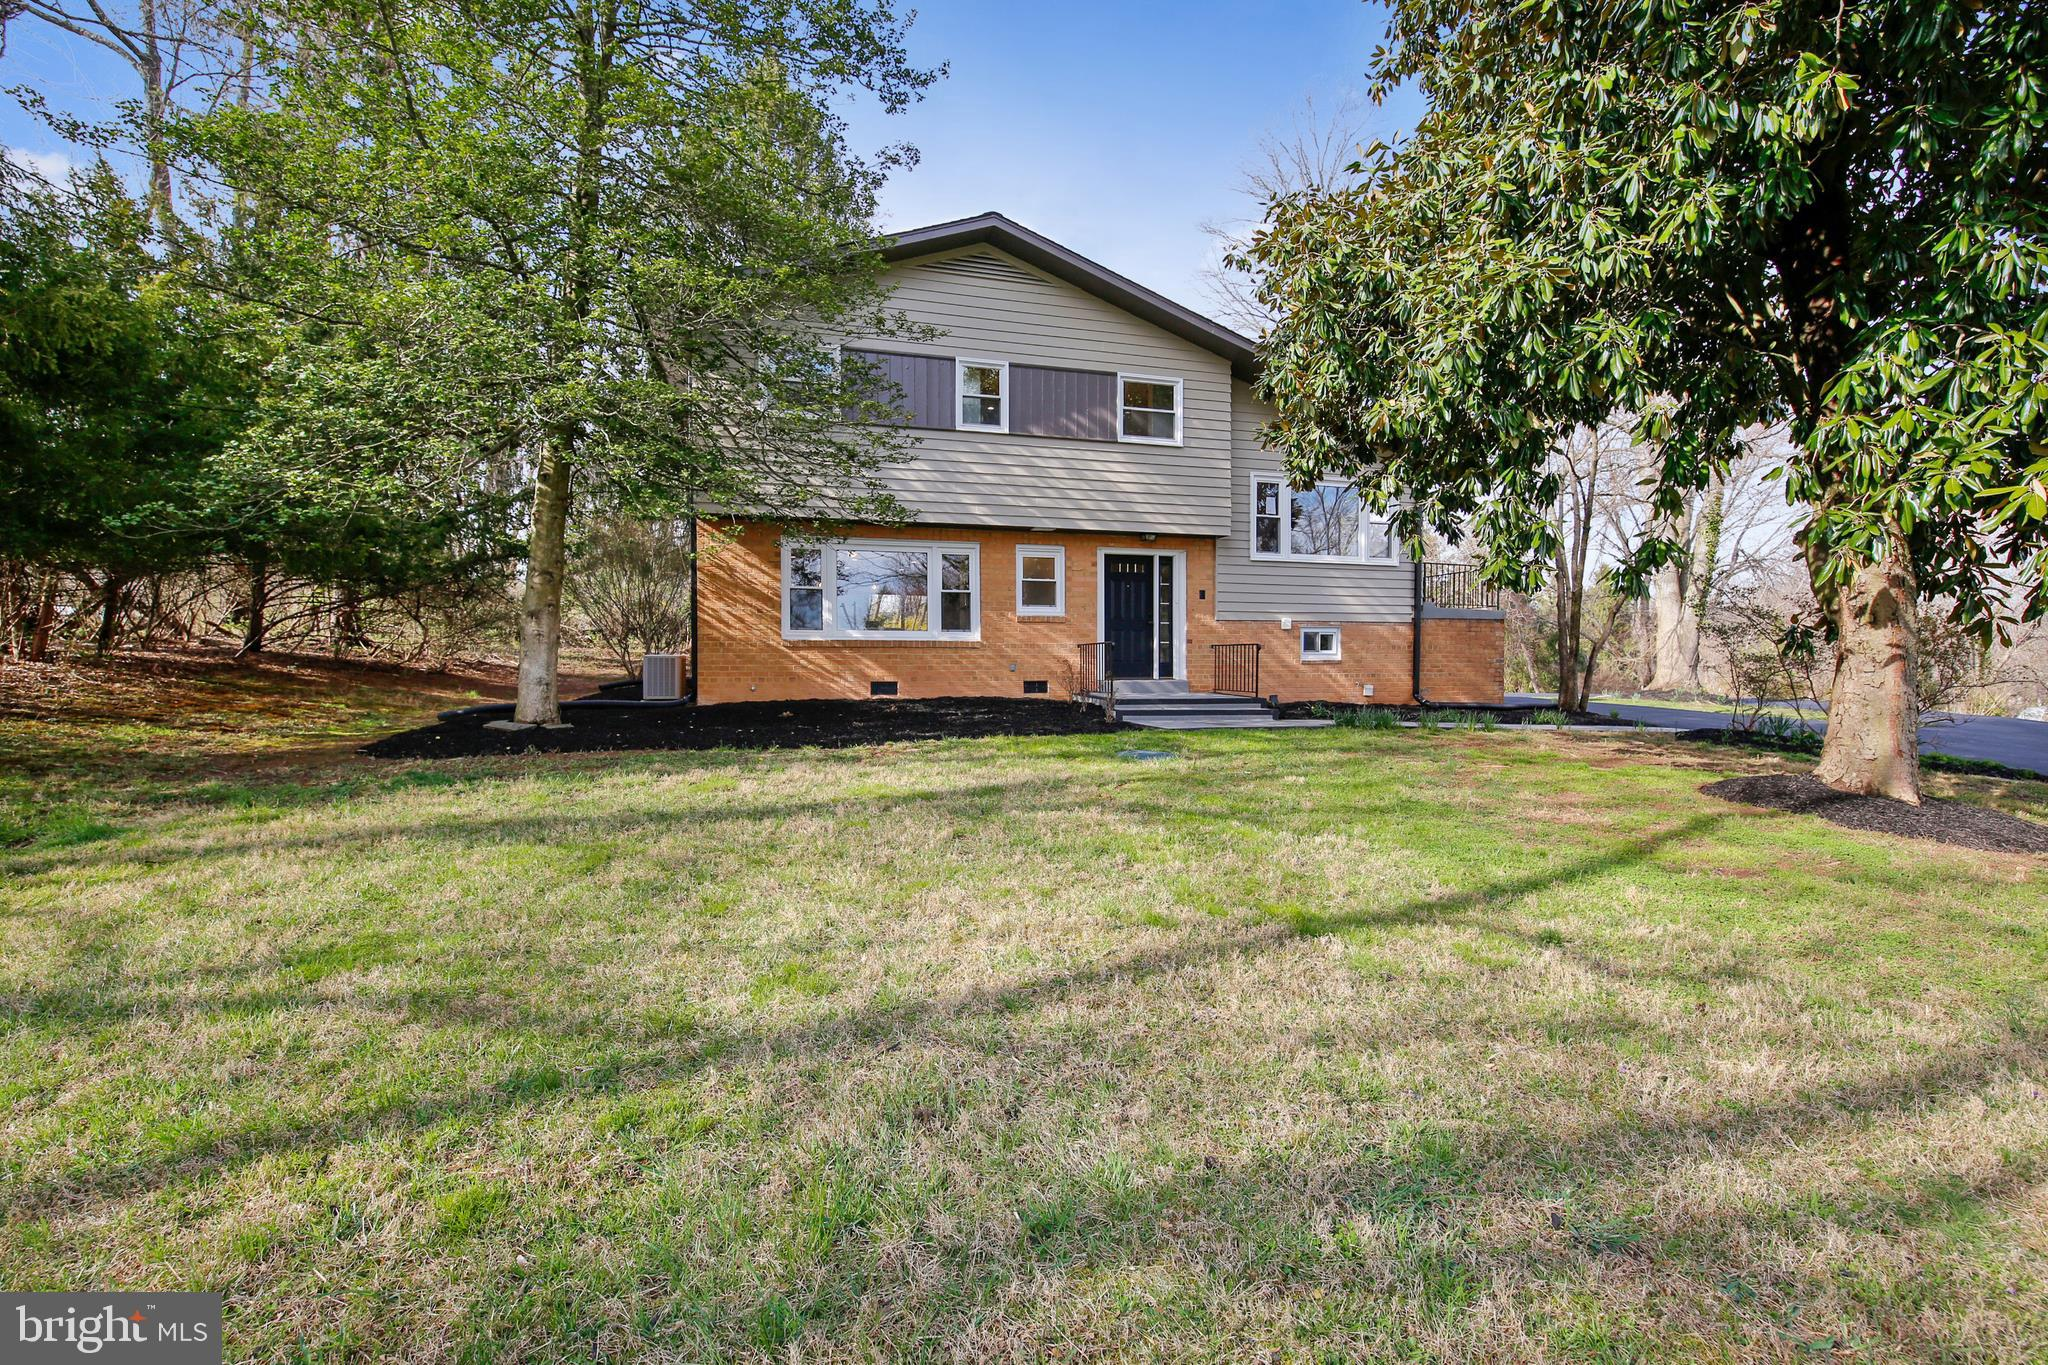 14600 FAIRACRES ROAD, SILVER SPRING, MD 20905